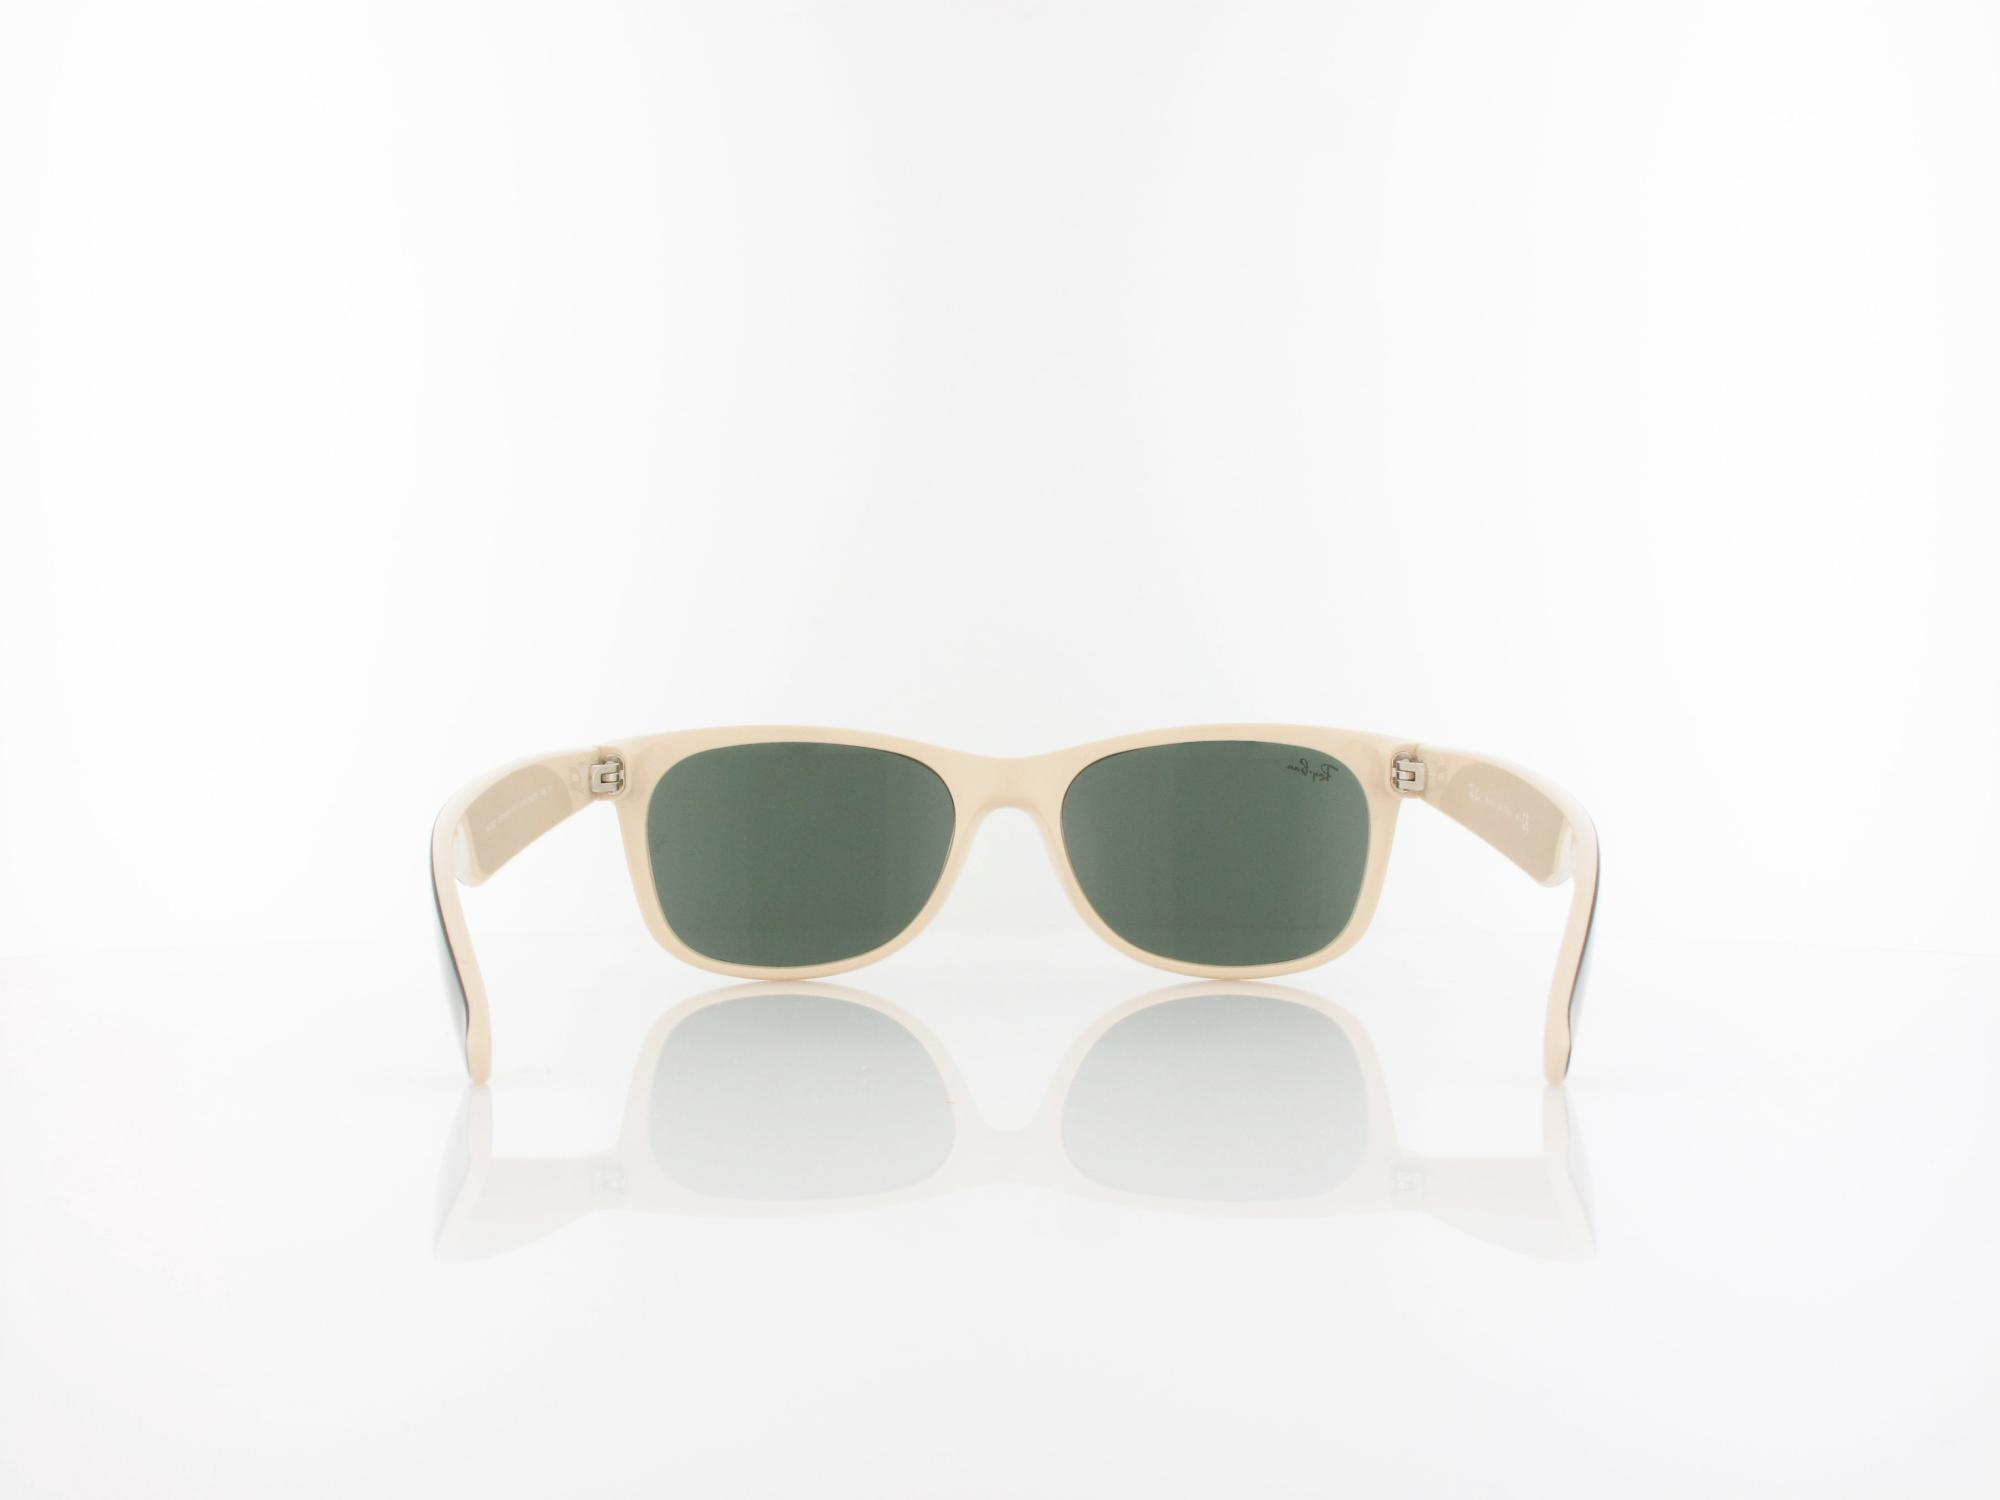 Ray Ban | New Wayfarer RB2132  875 55 | top black on beige / crystal green